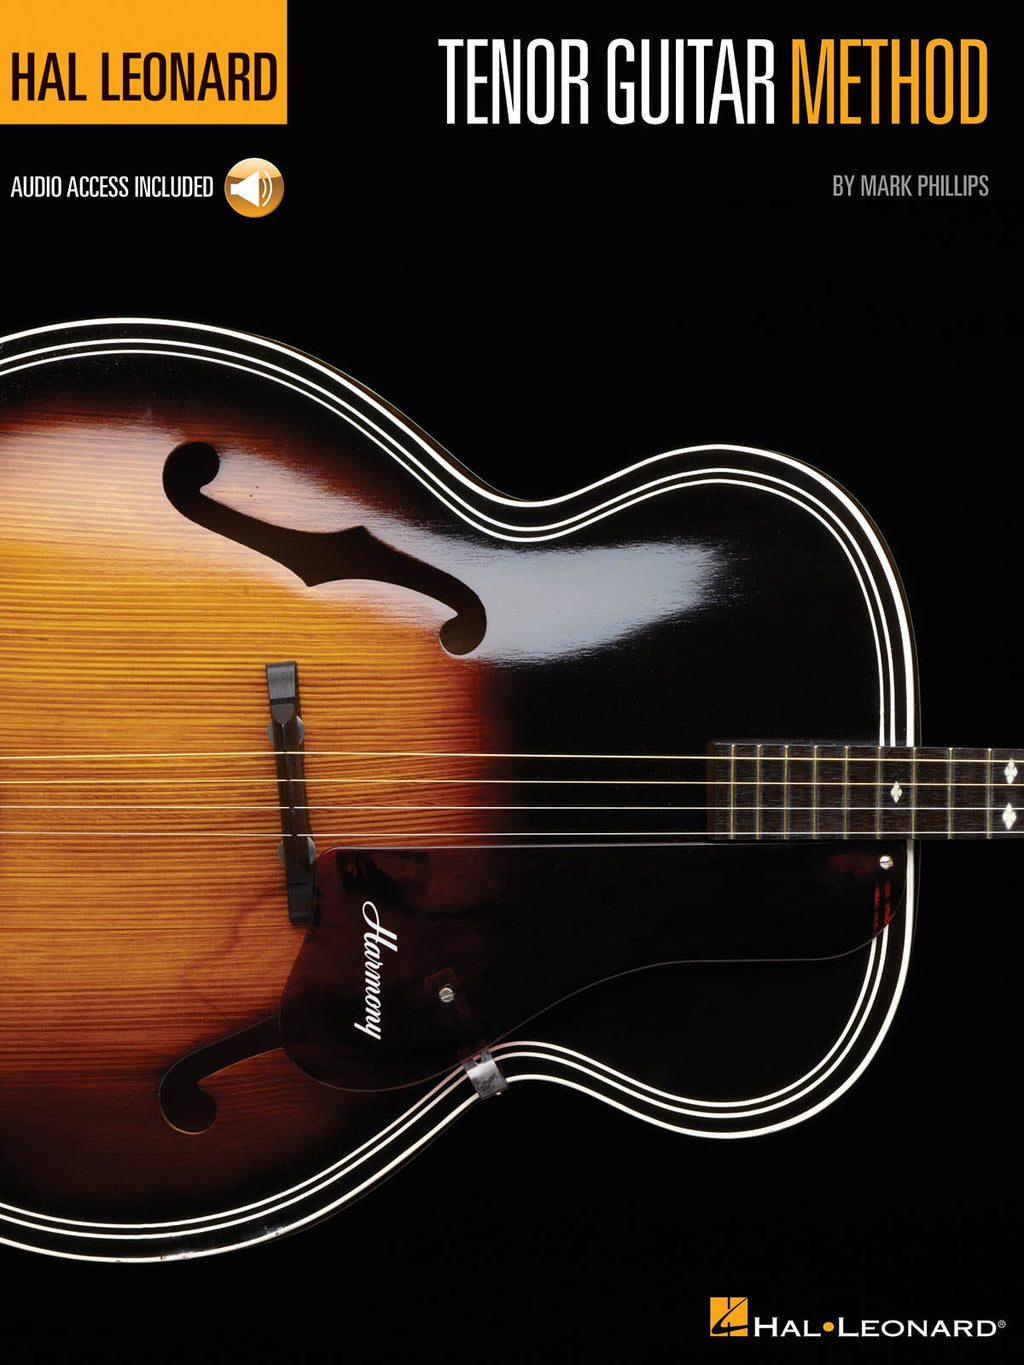 Tenor Guitar Method - Instructional Songbook